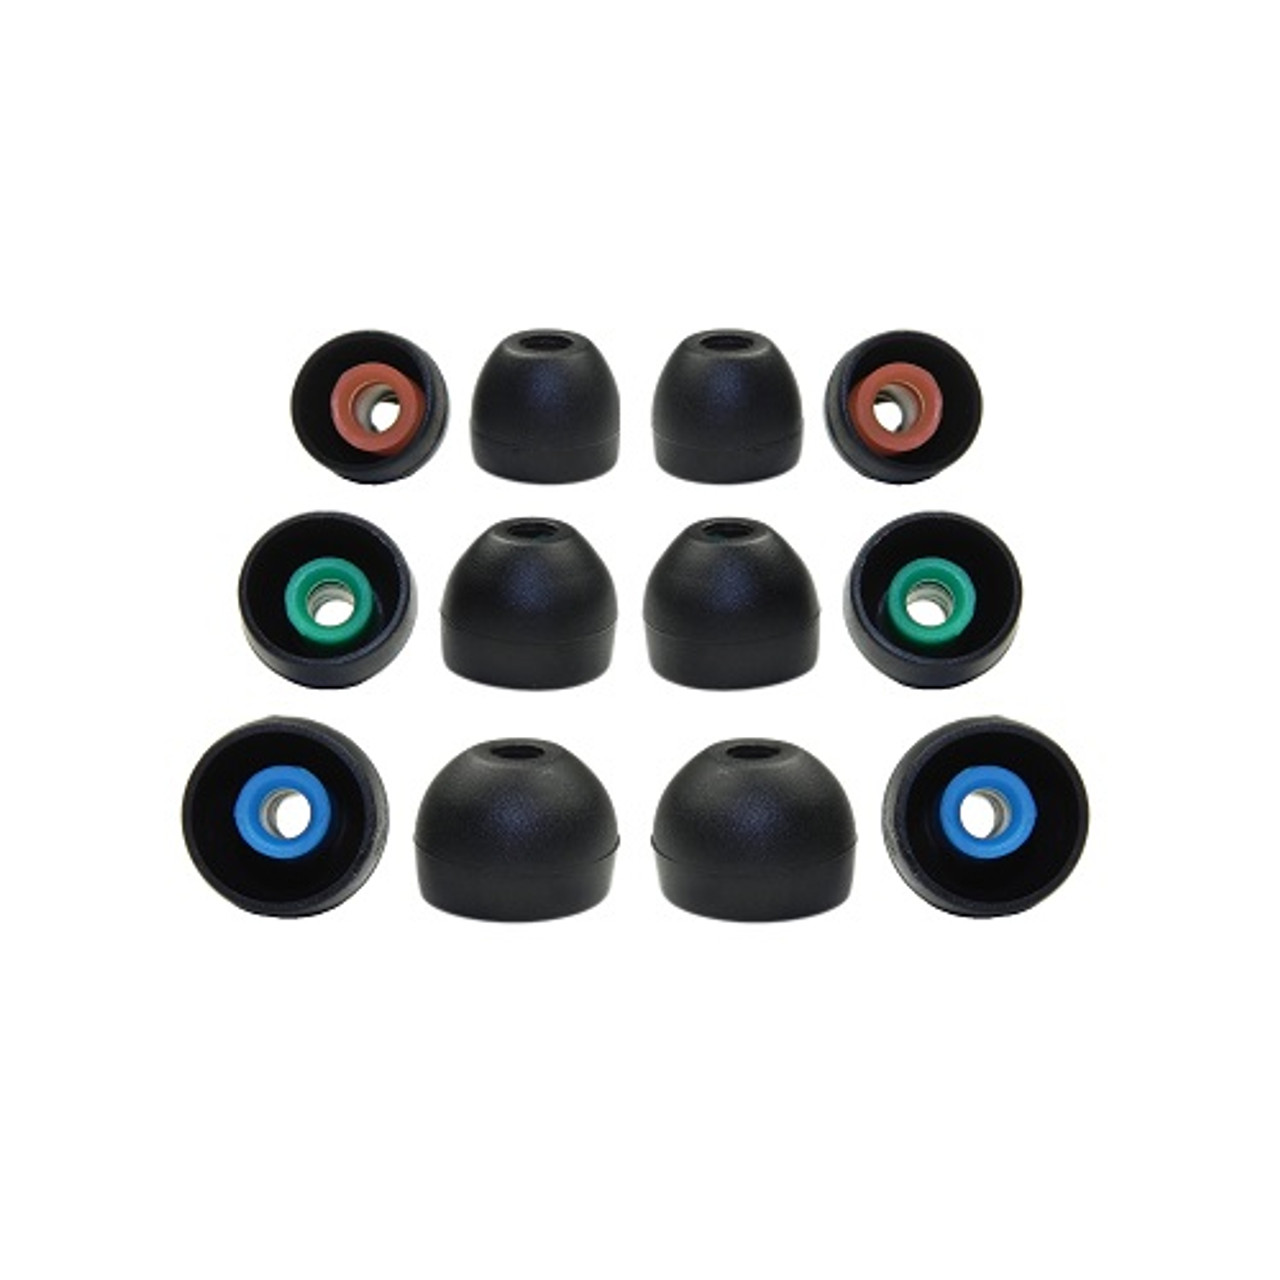 6 pair Jaybird Freedom 2 replacement ear tips jaybird freedom 2 ear tips foam